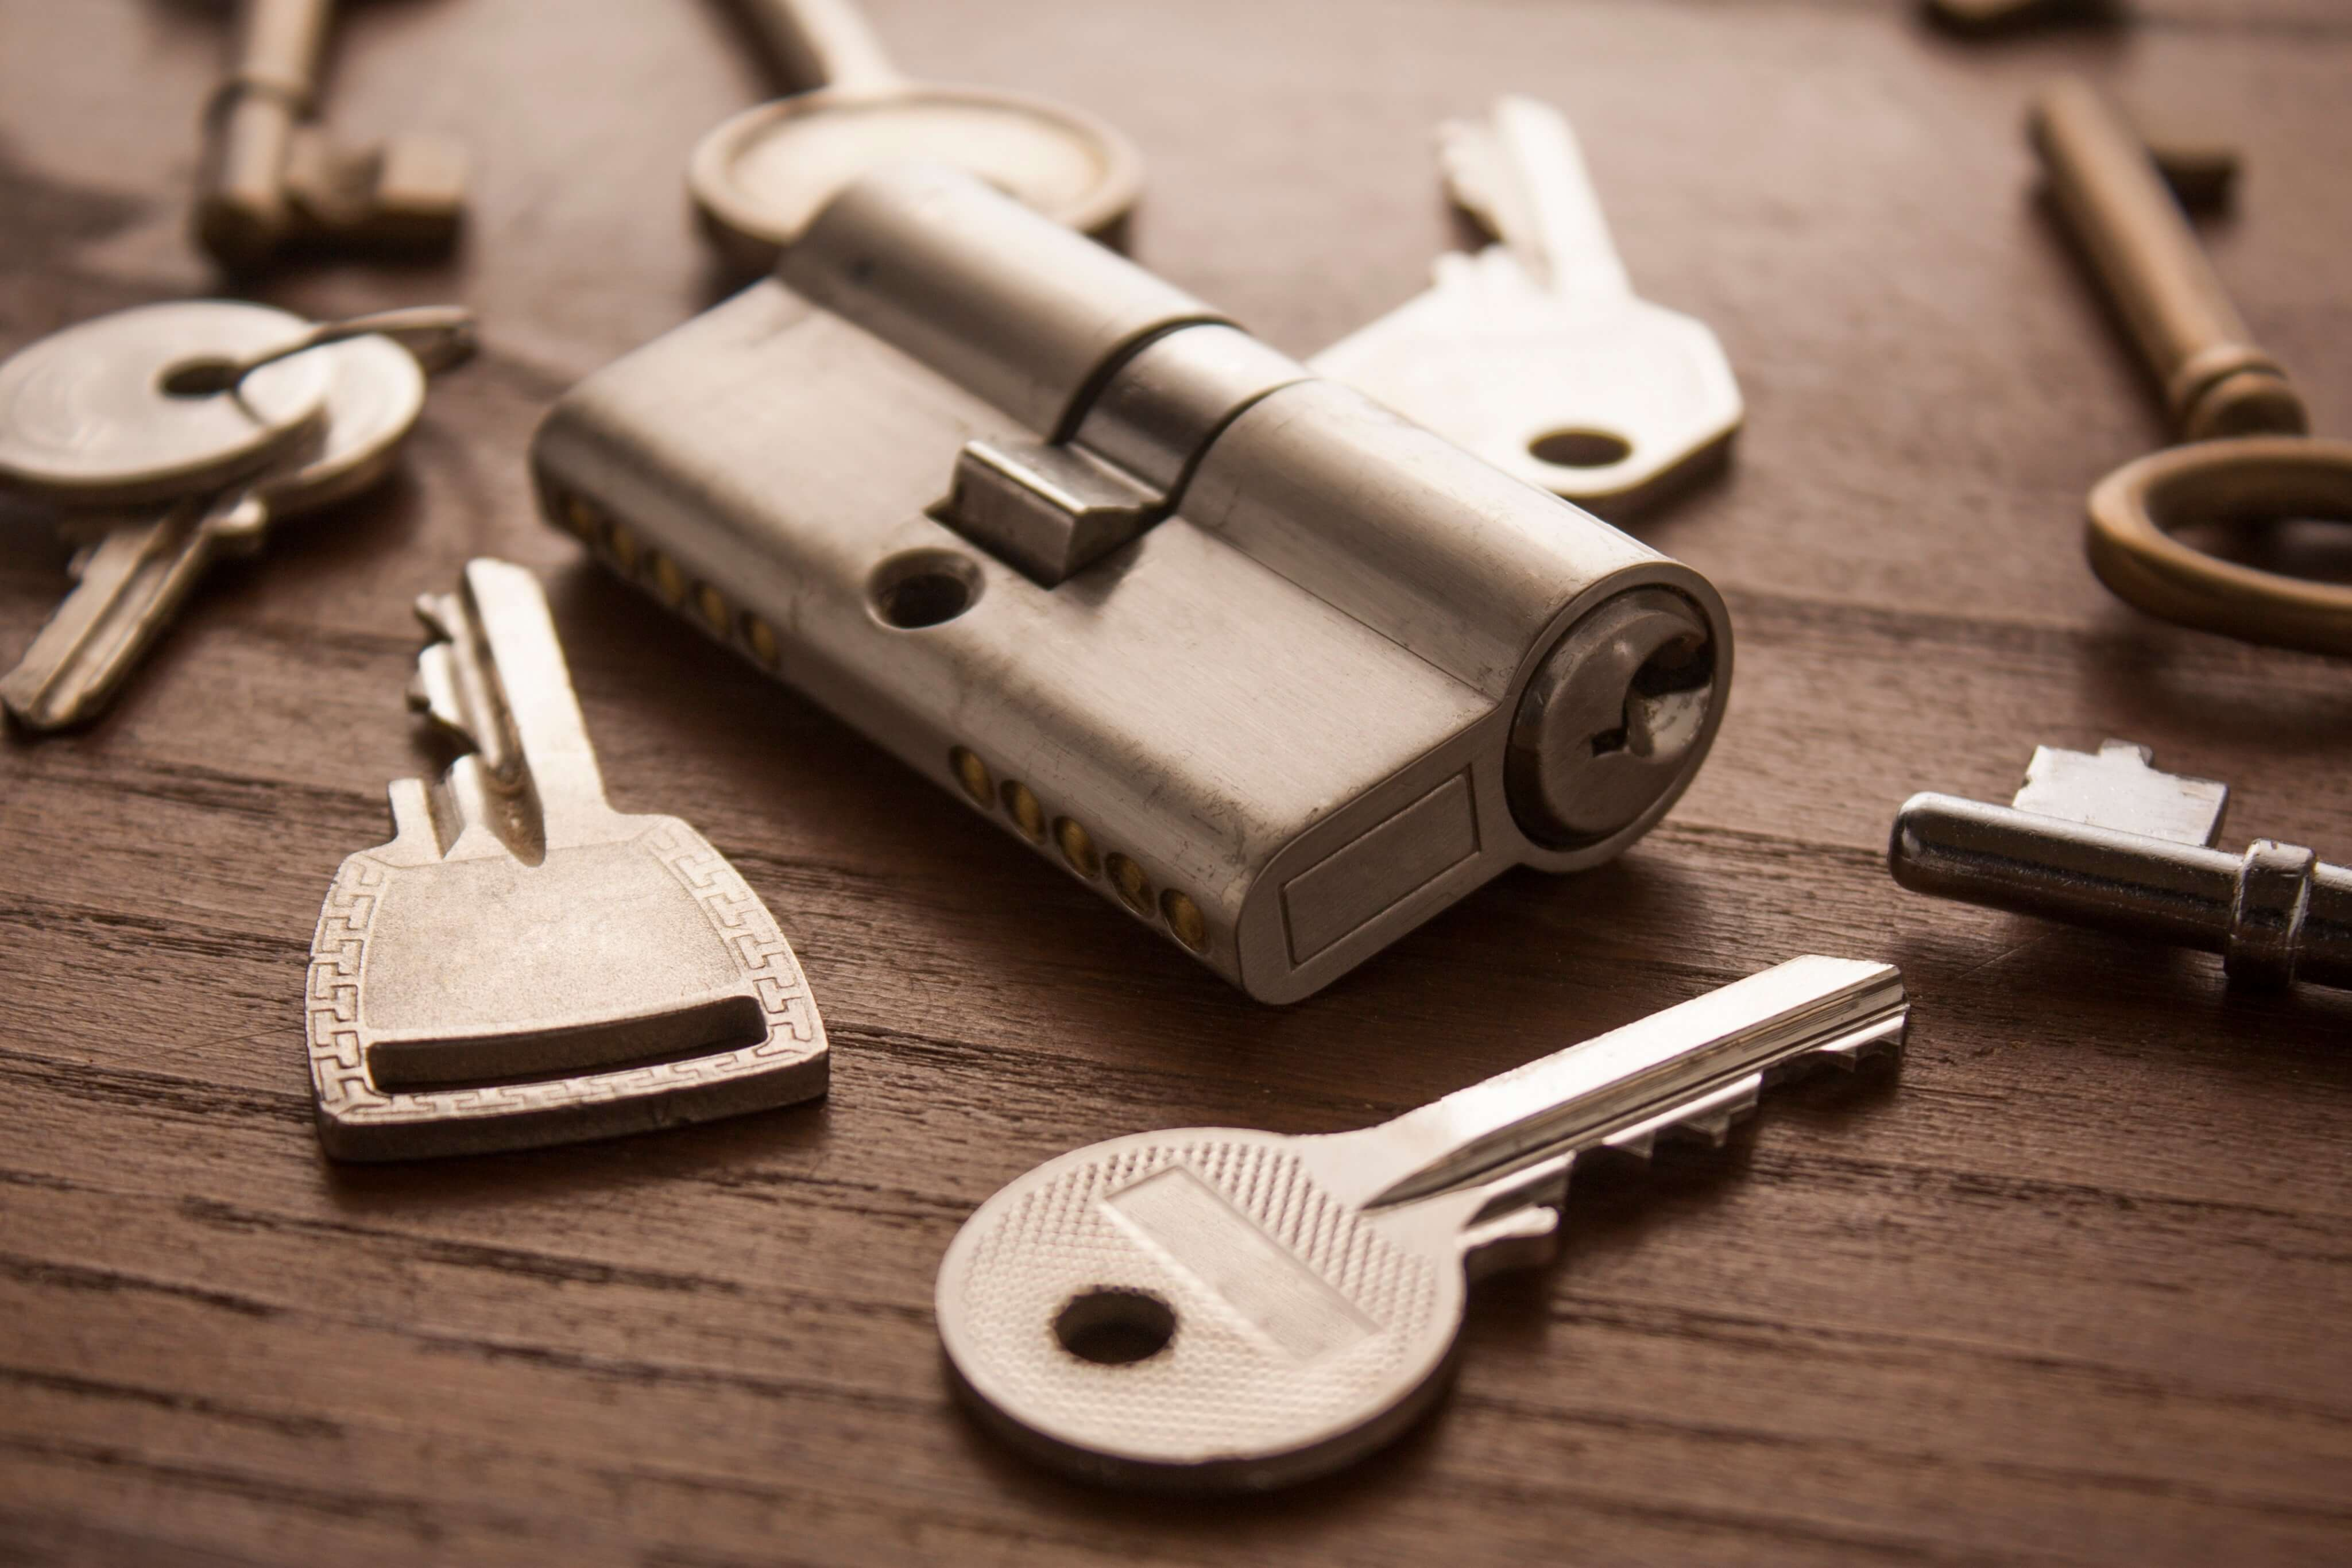 Rekeying vs. Replacing Locks with a Residential Locksmith